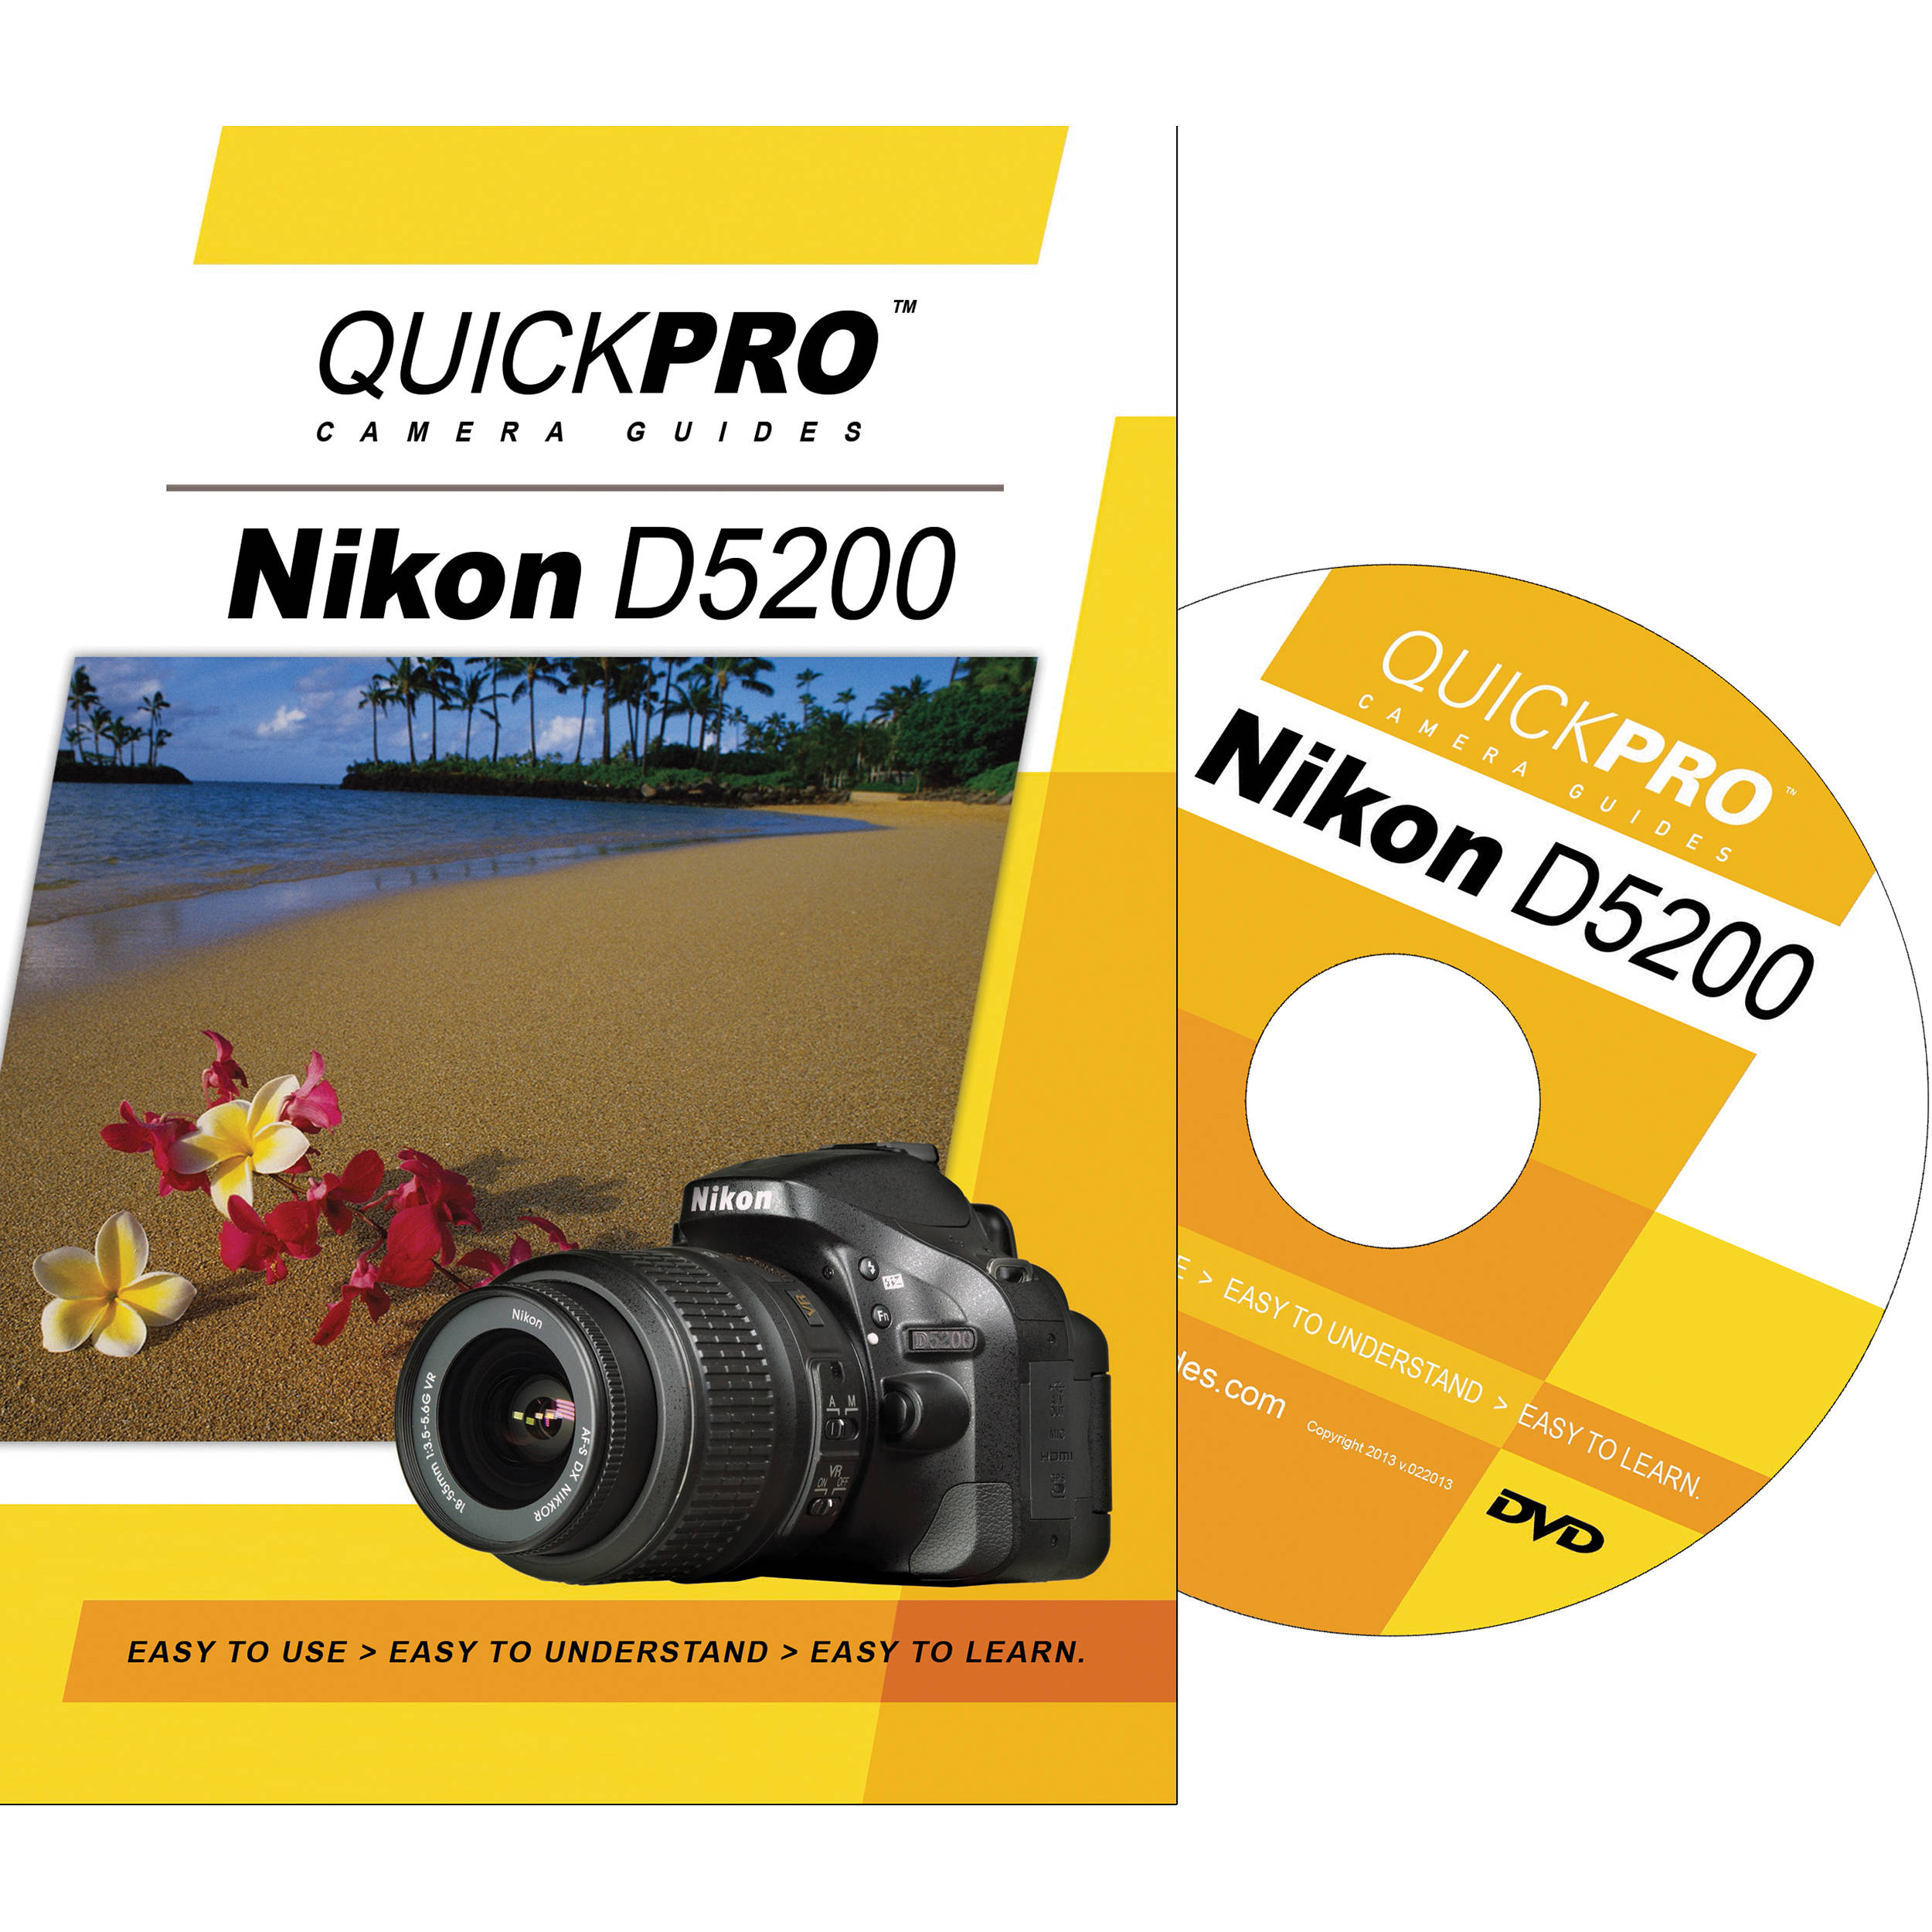 QuickPro DVD: Nikon D5200 Instructional Camera Guide